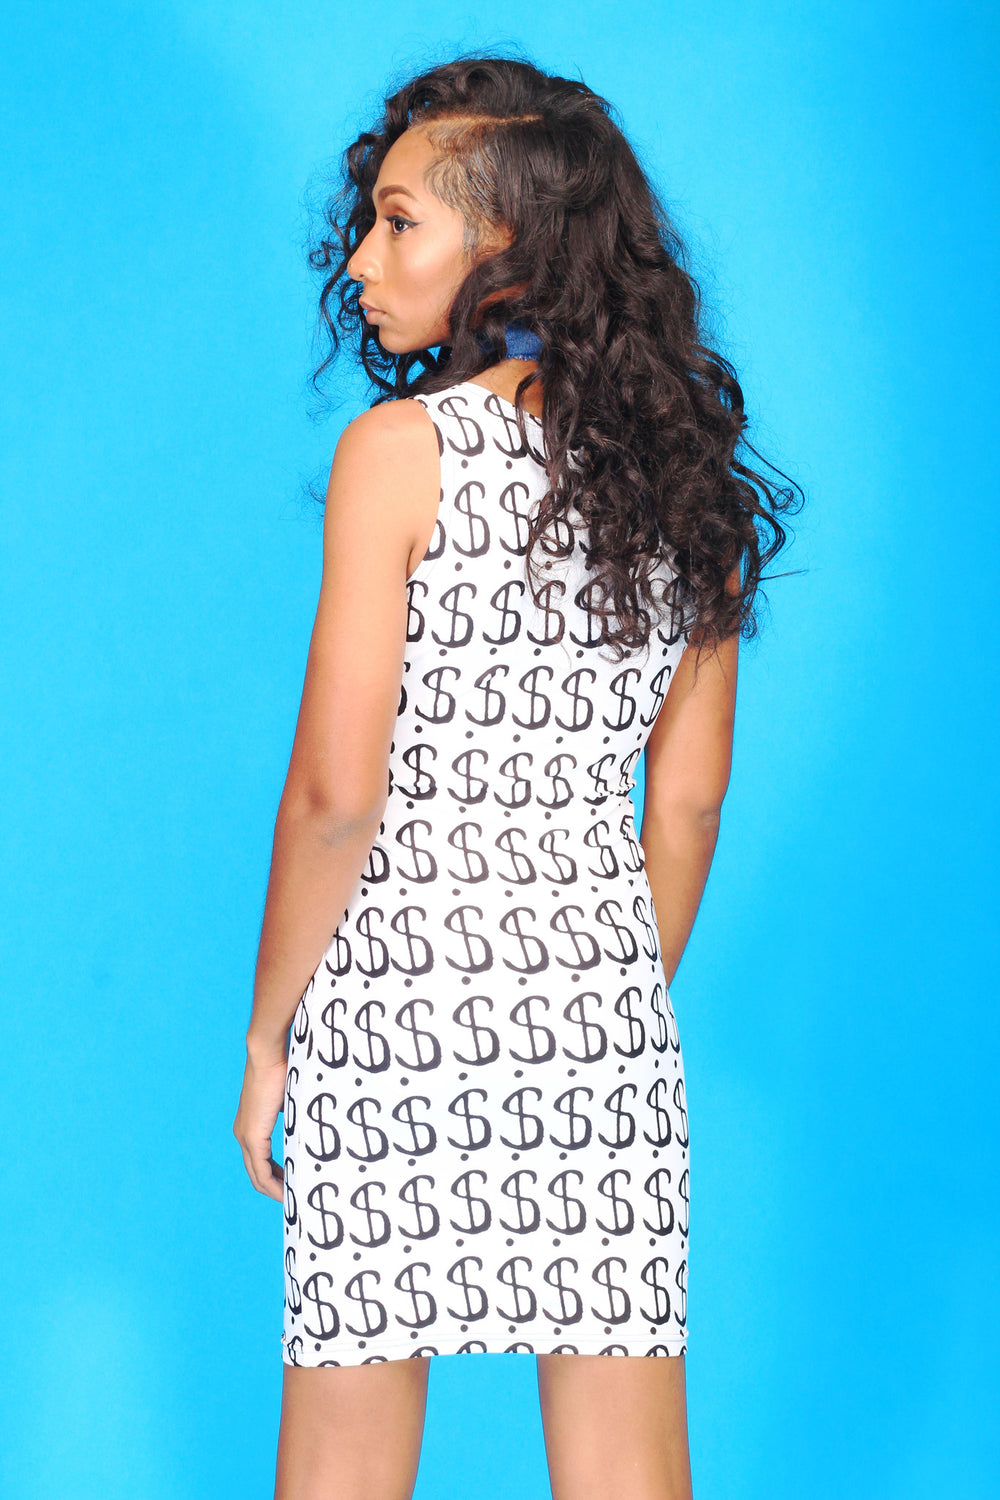 SKRILLA DRESS - SIOBHAN HUNTER BRAND